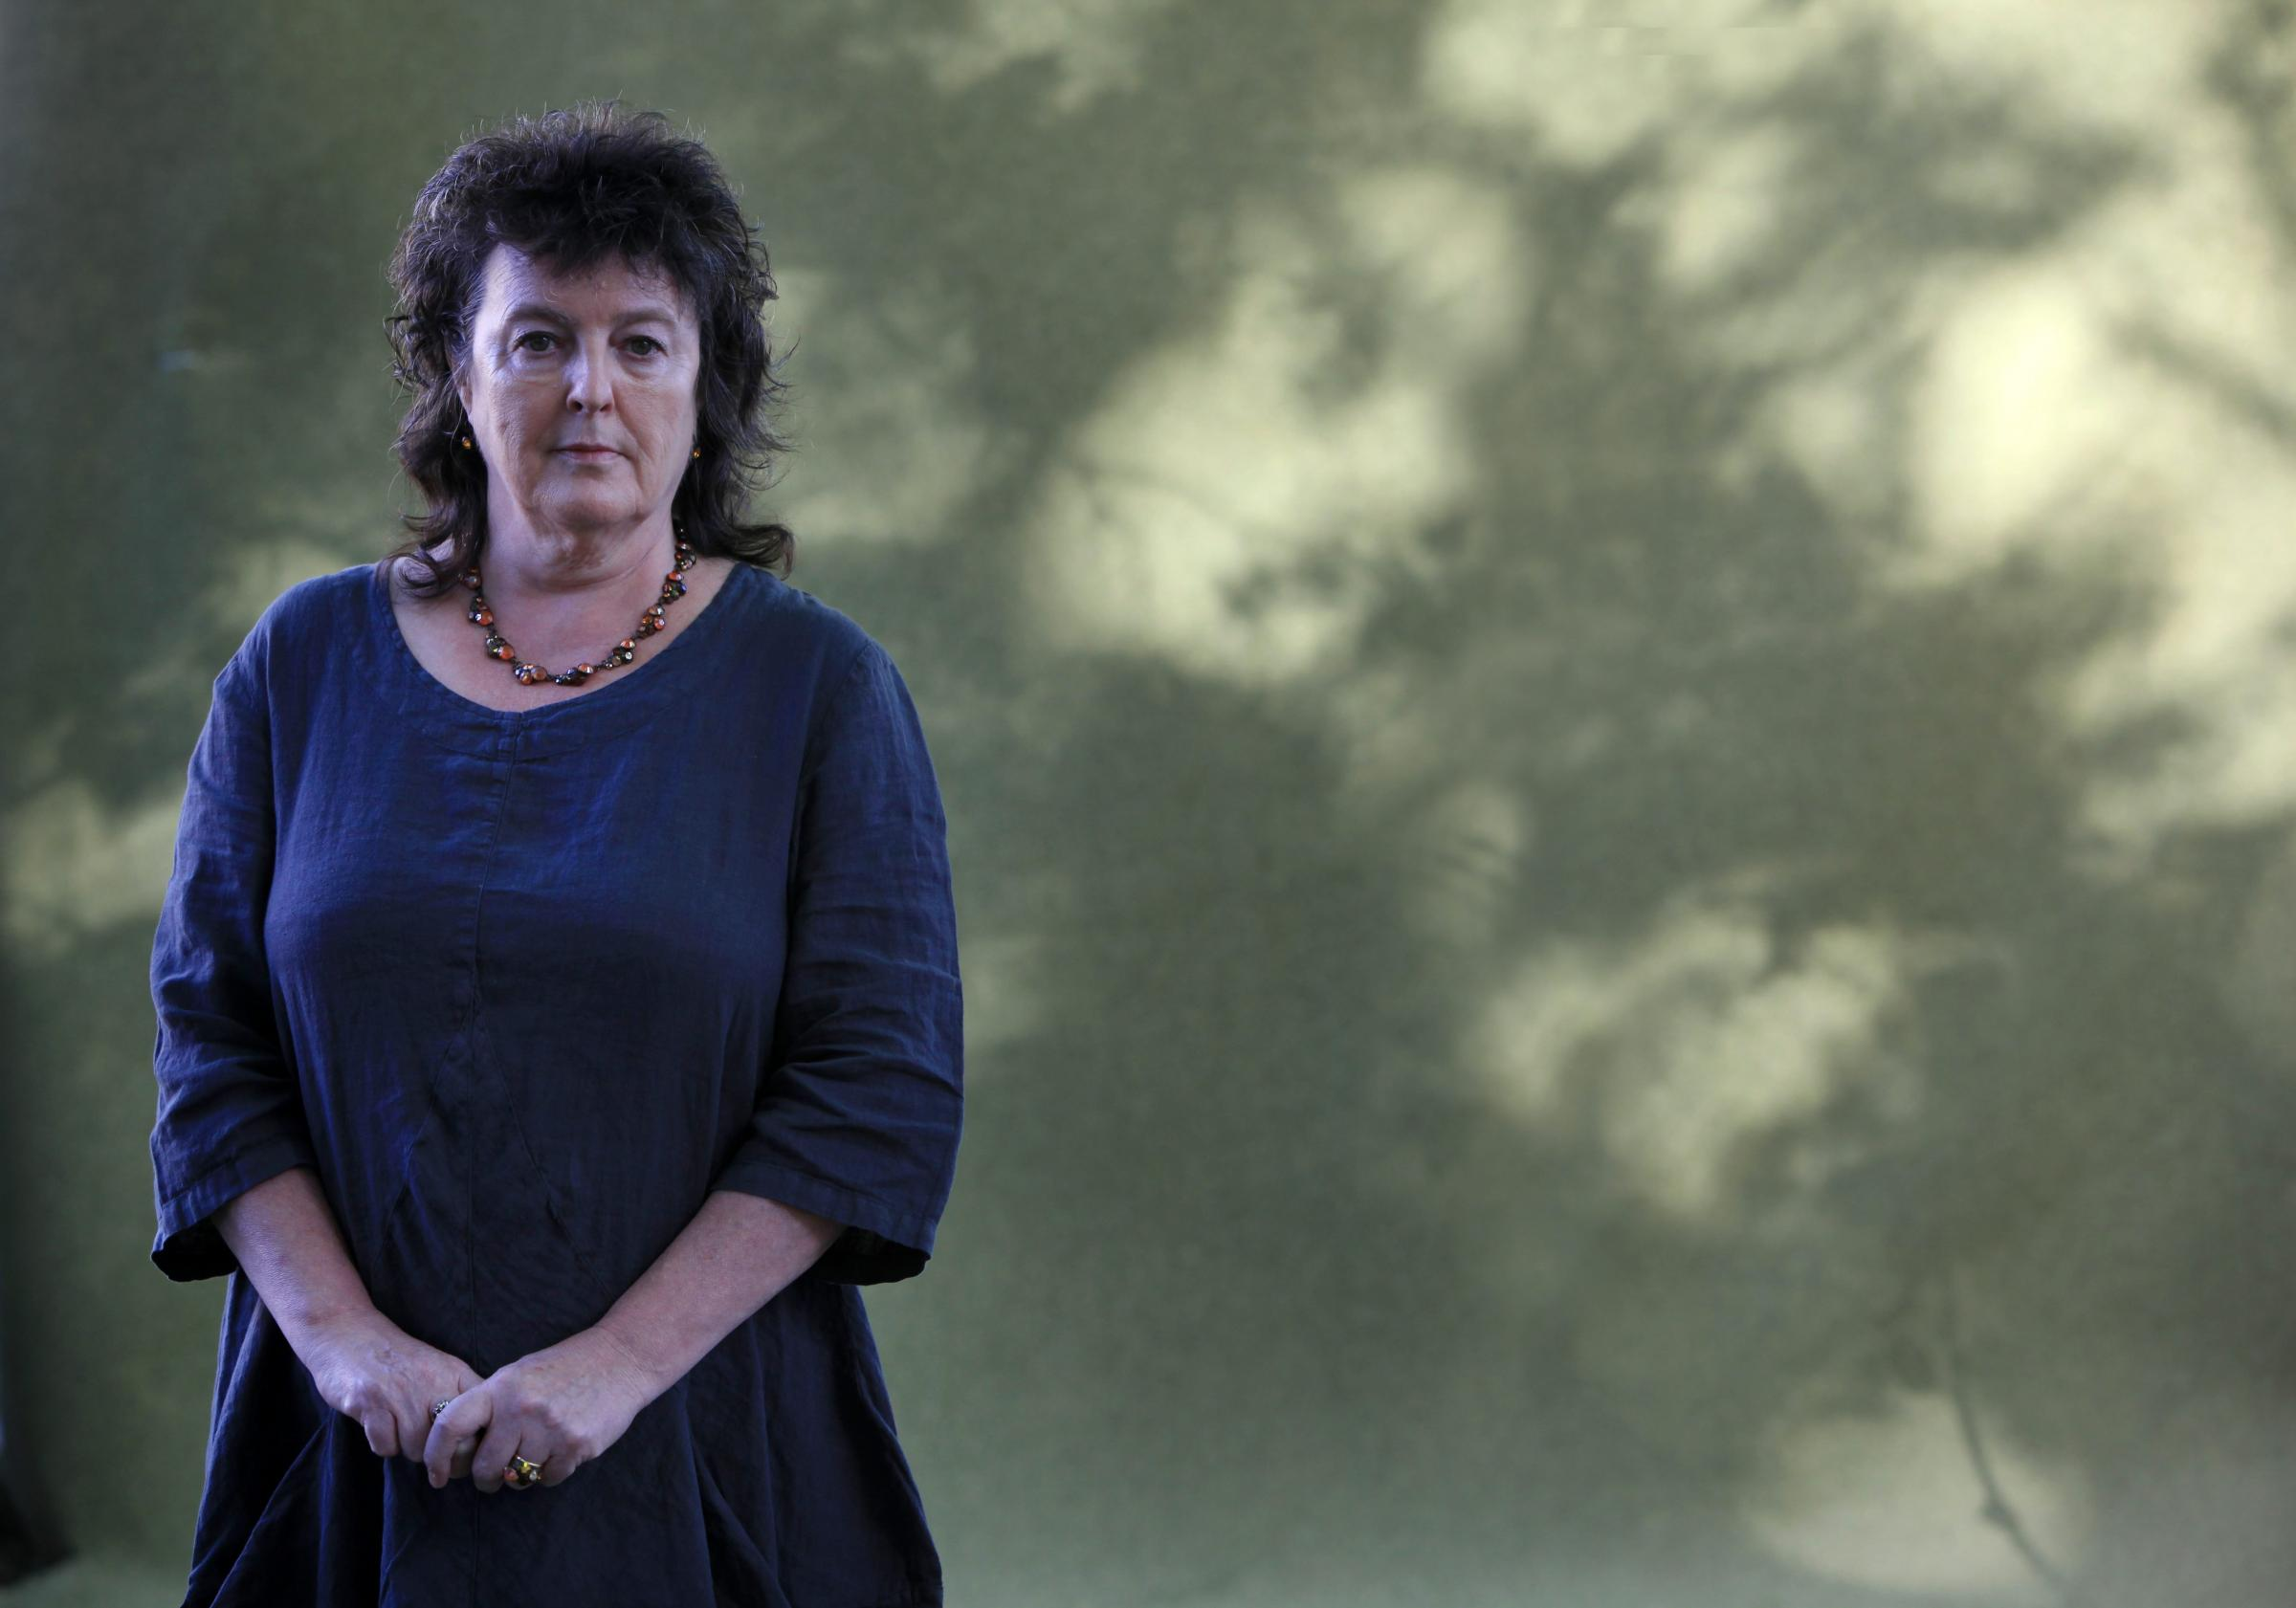 Author Carol Ann Duffy pictured on the opening day of the Edinburgh Book Festival 9/8/14.